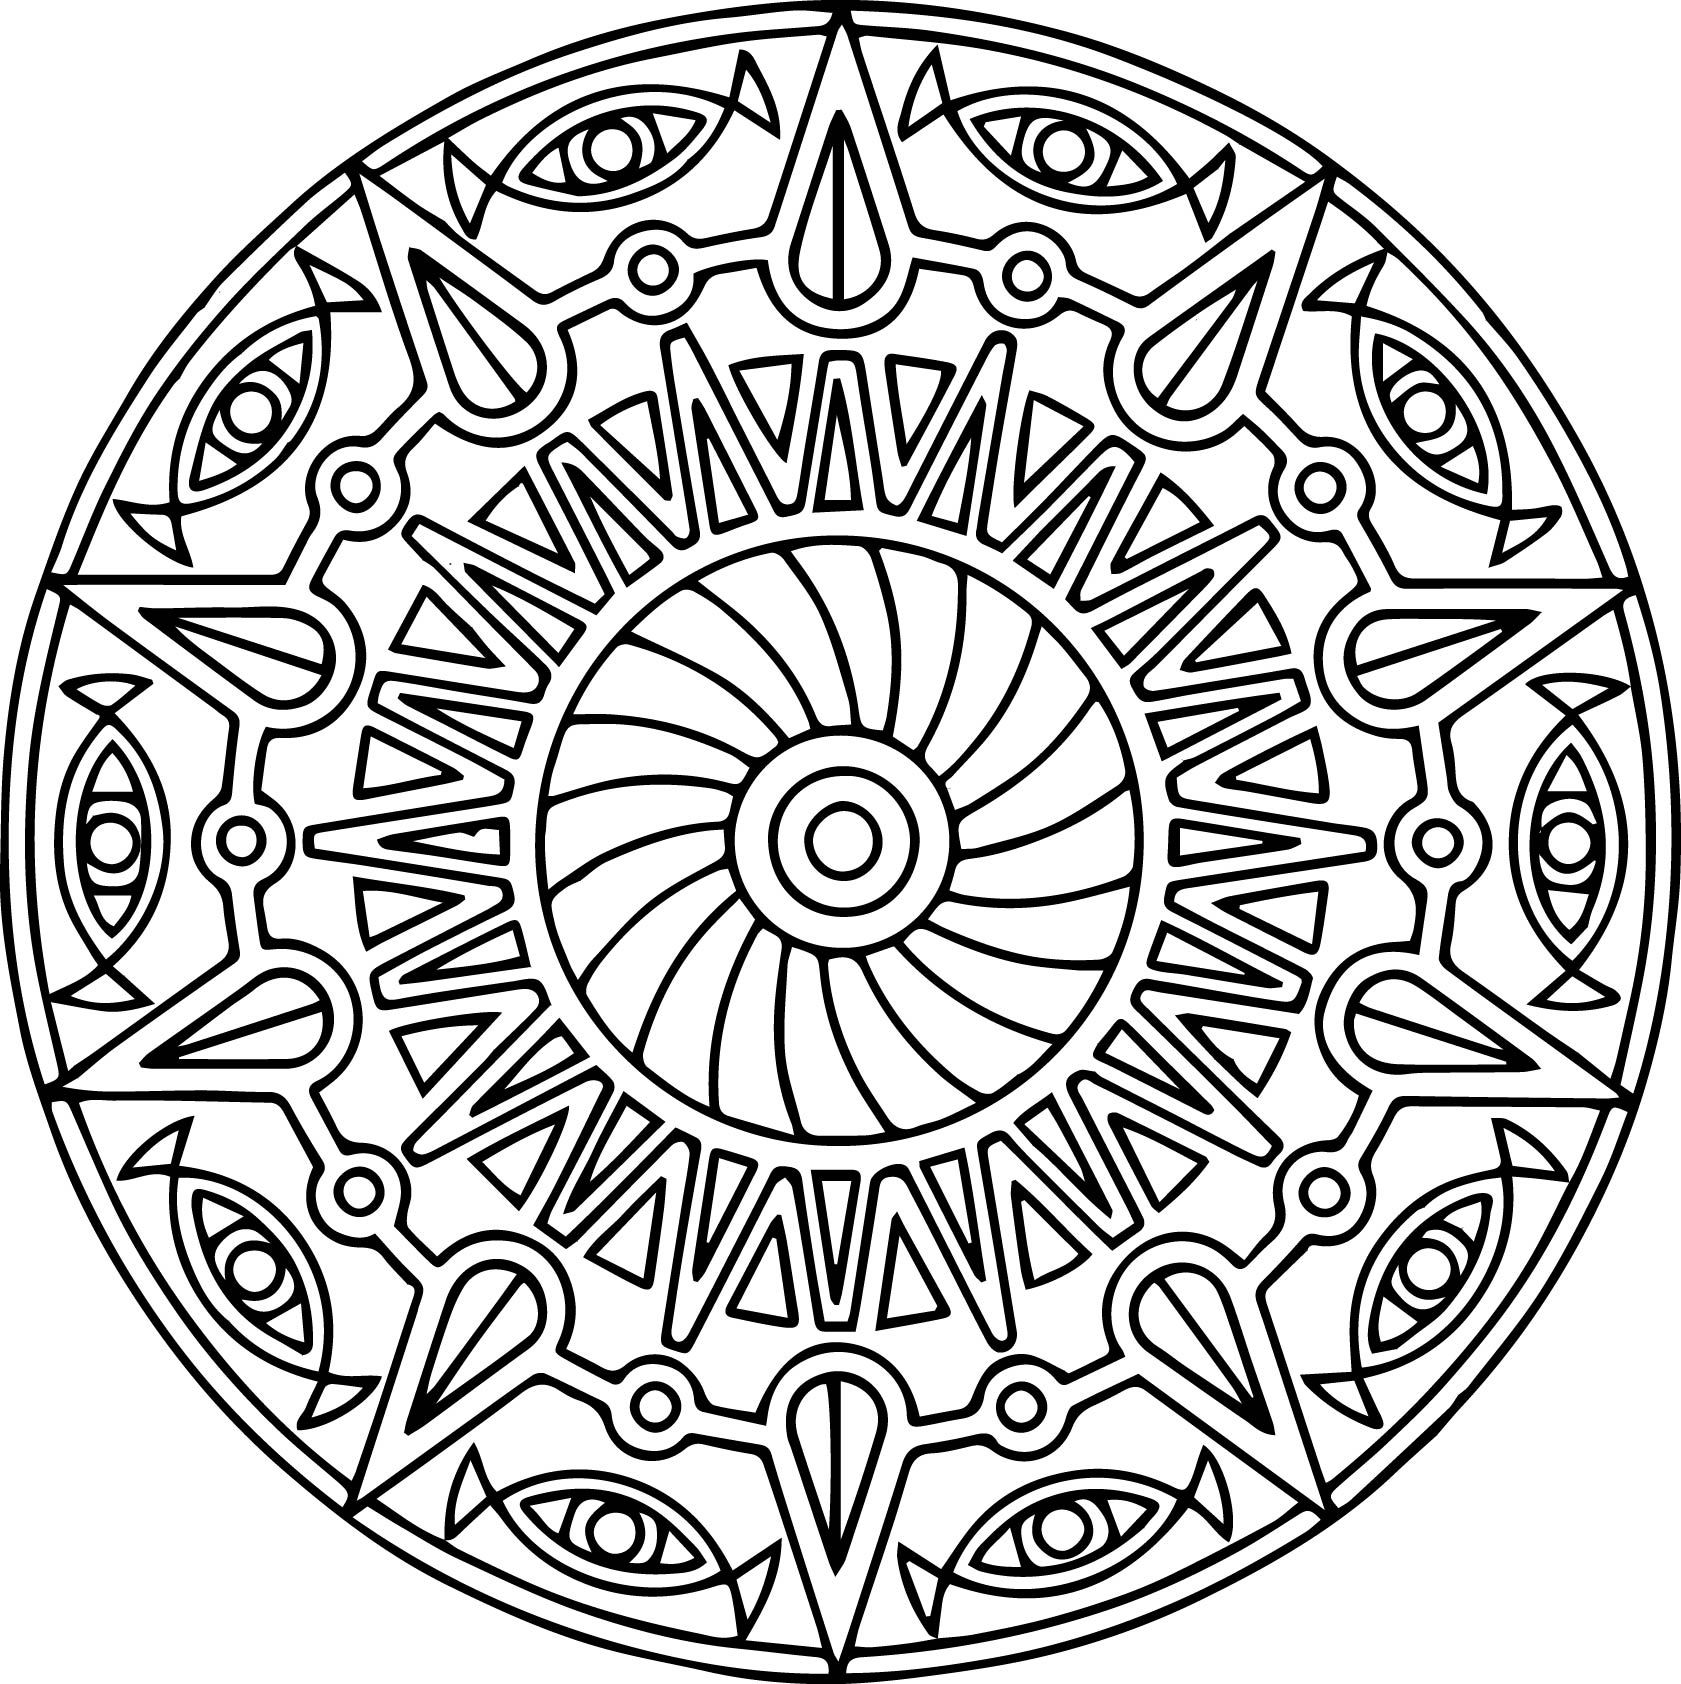 cool mandala coloring pages wecoloringpage pinterest. Black Bedroom Furniture Sets. Home Design Ideas